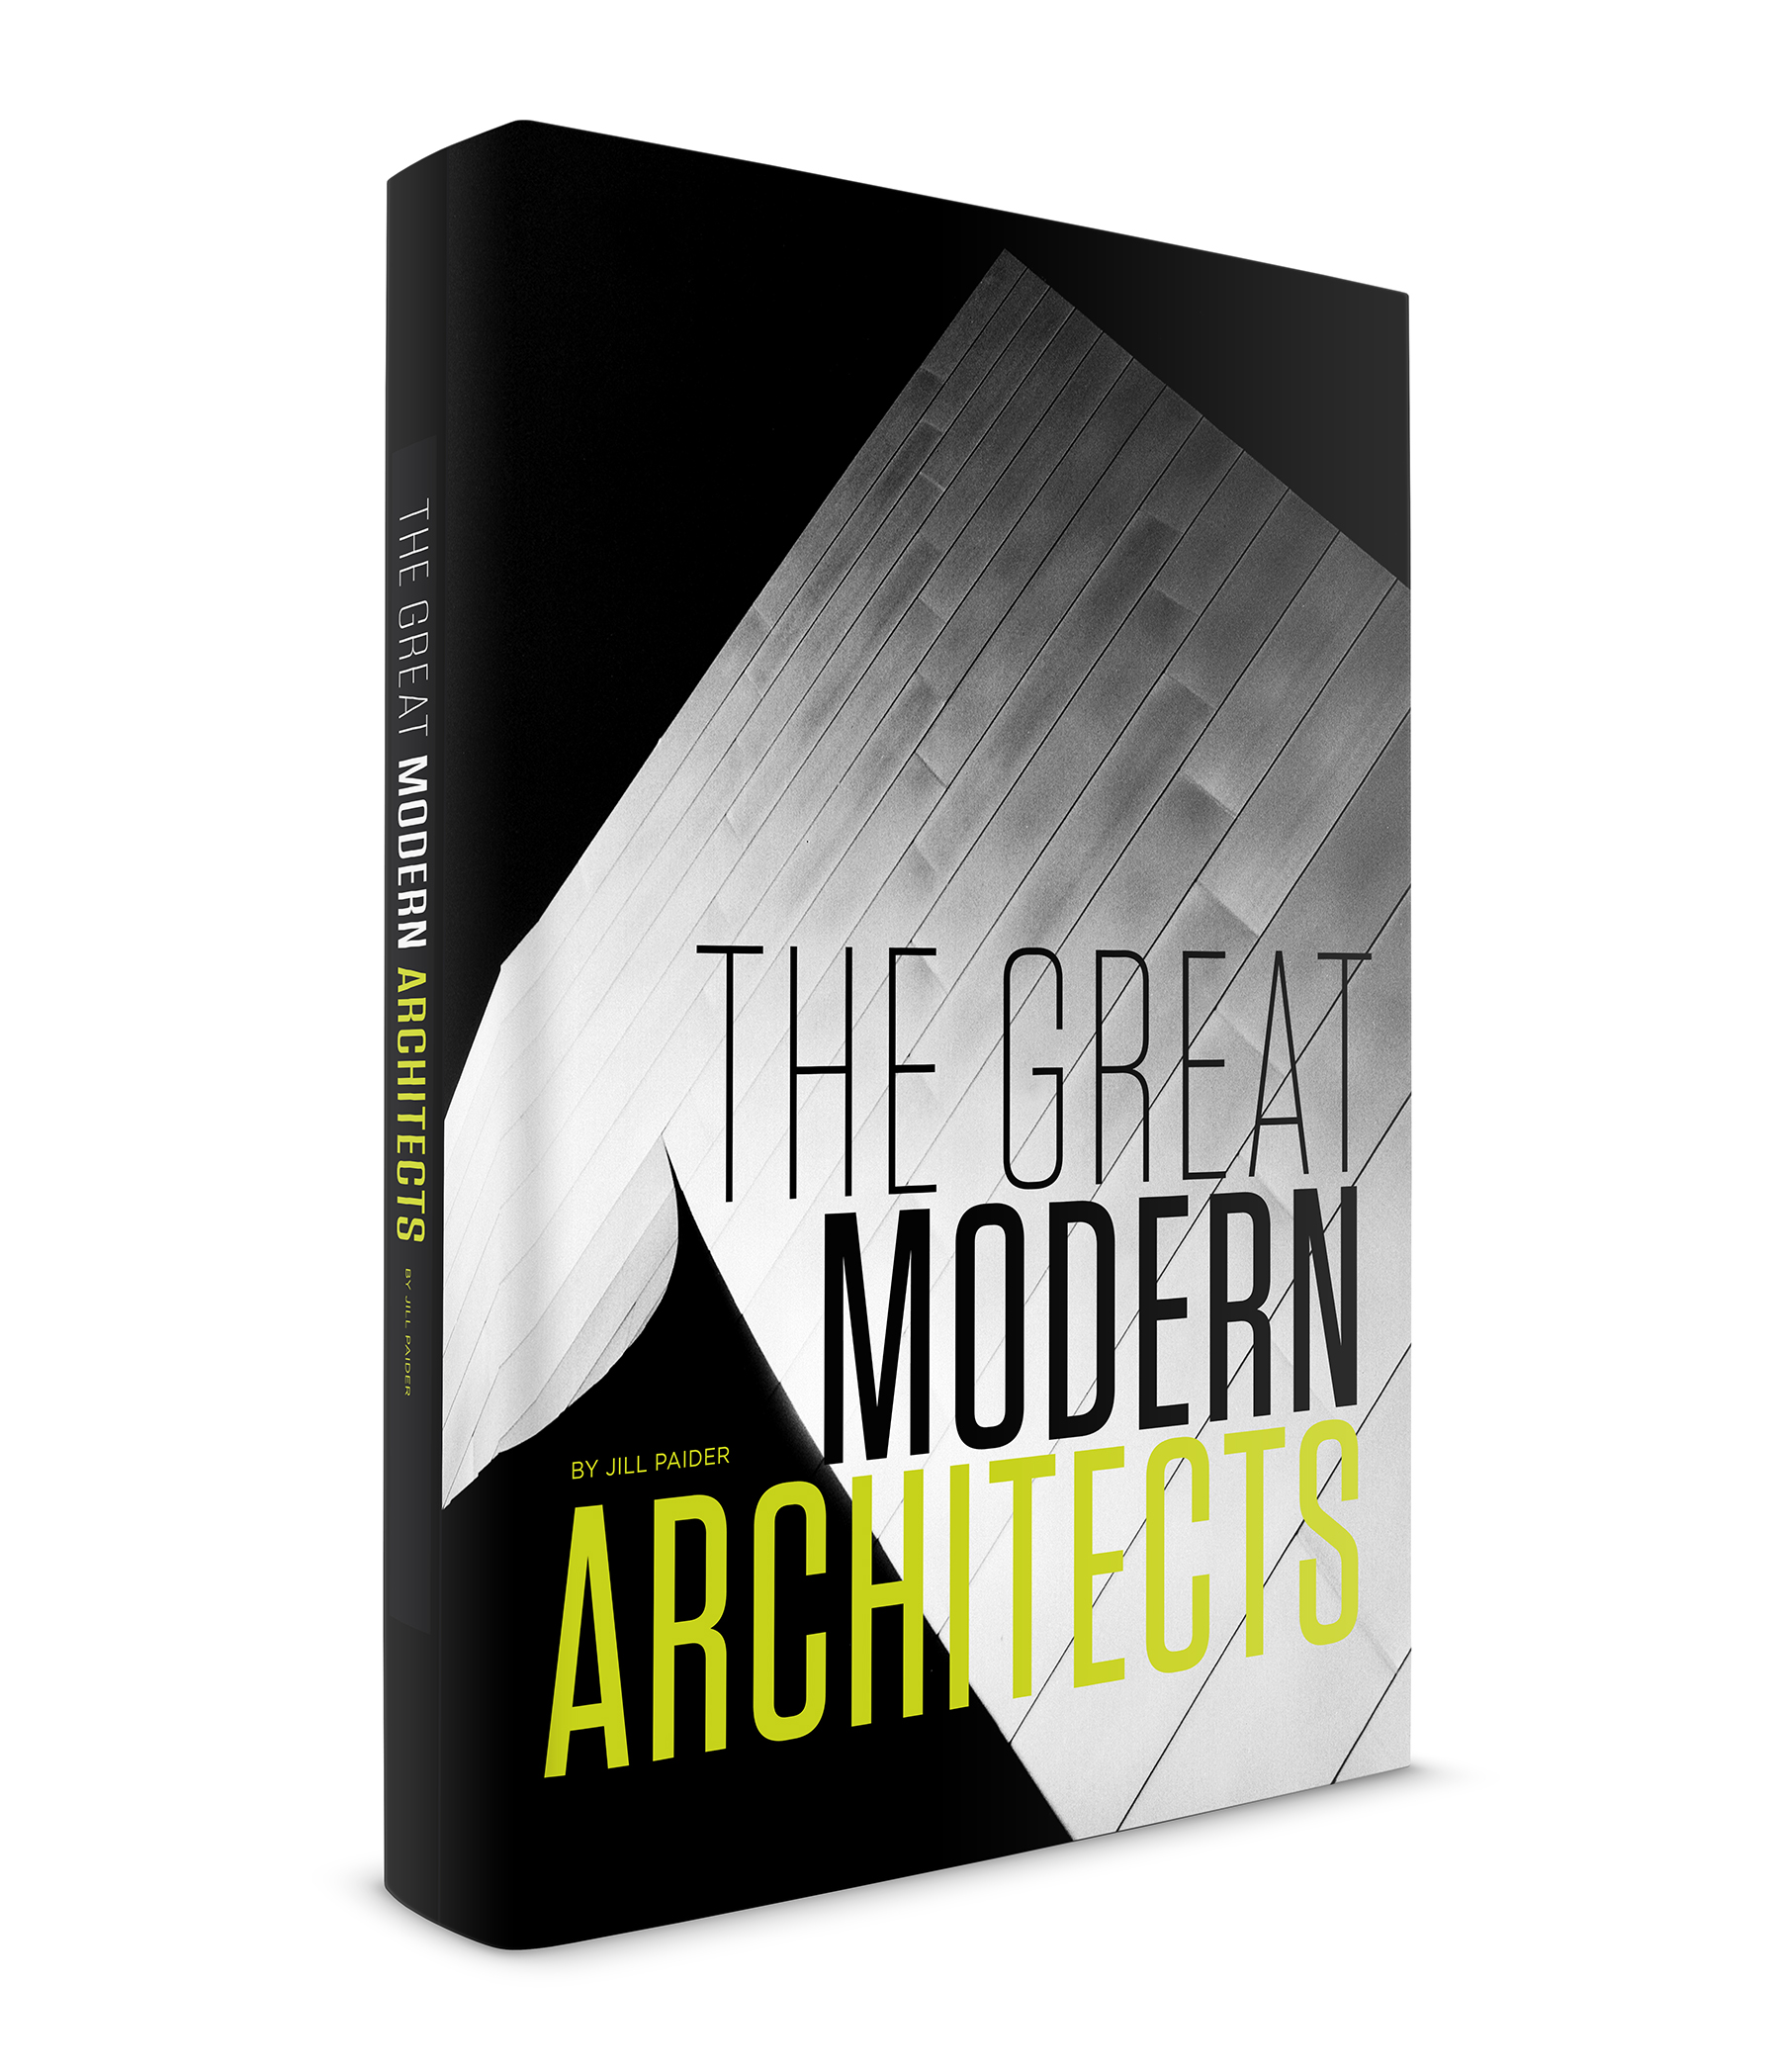 THE GREAT MODERN ARCHITECTS